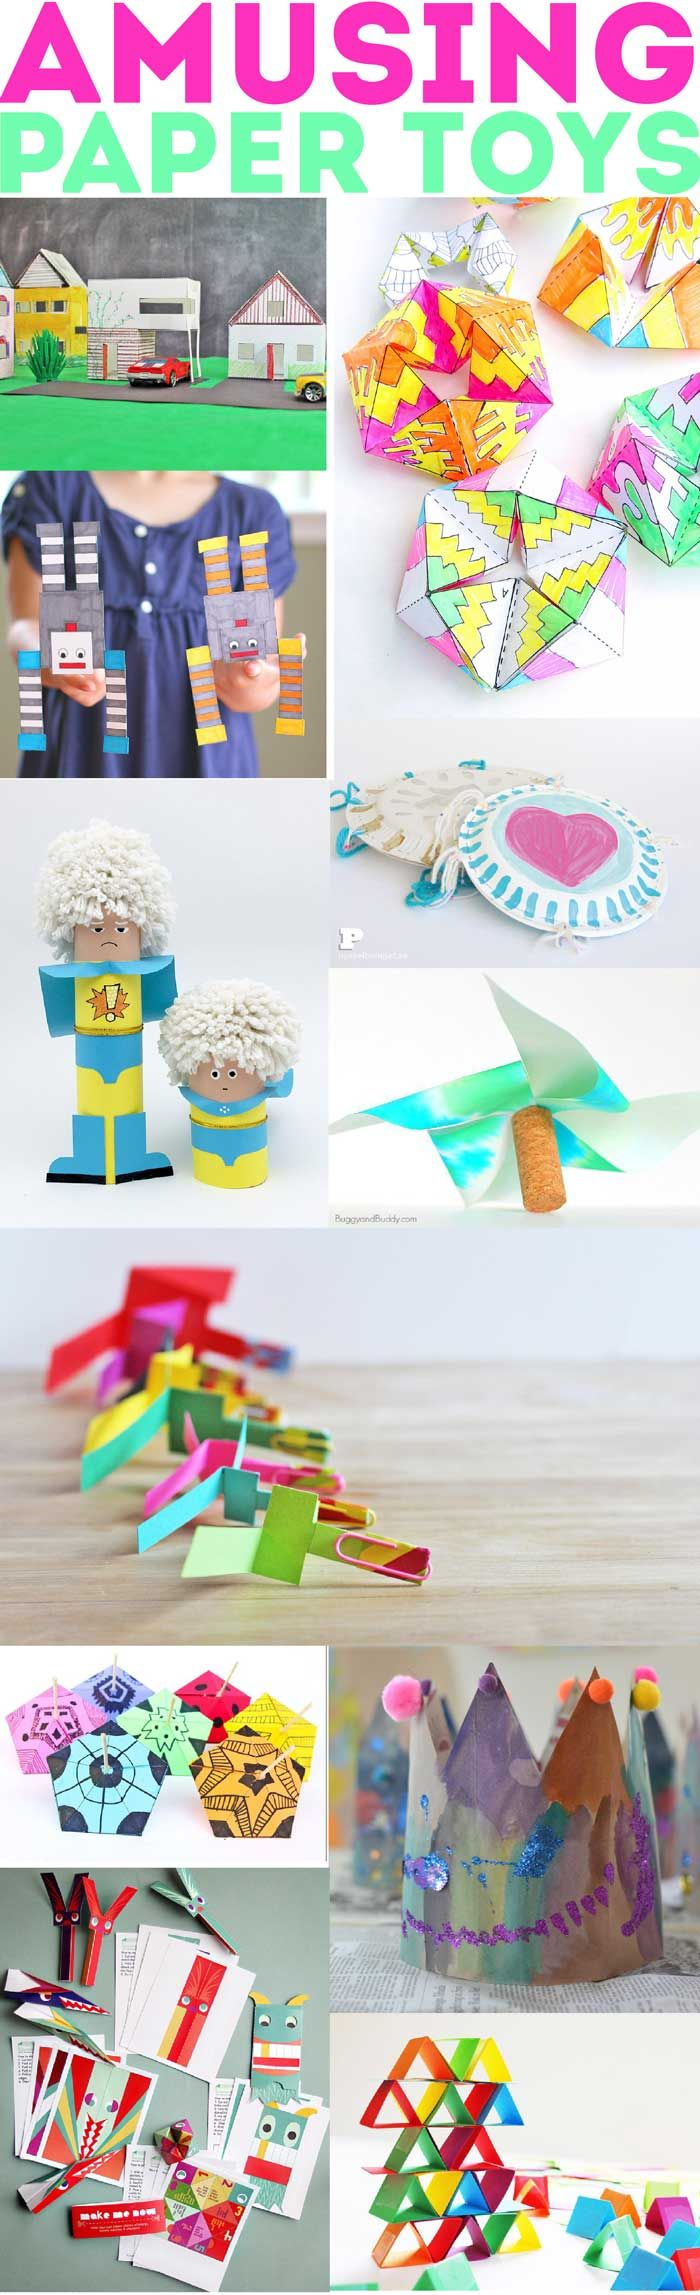 60 paper crafts for kids and adults from the rockin art moms paper - Pictures Of Crafts For Kids